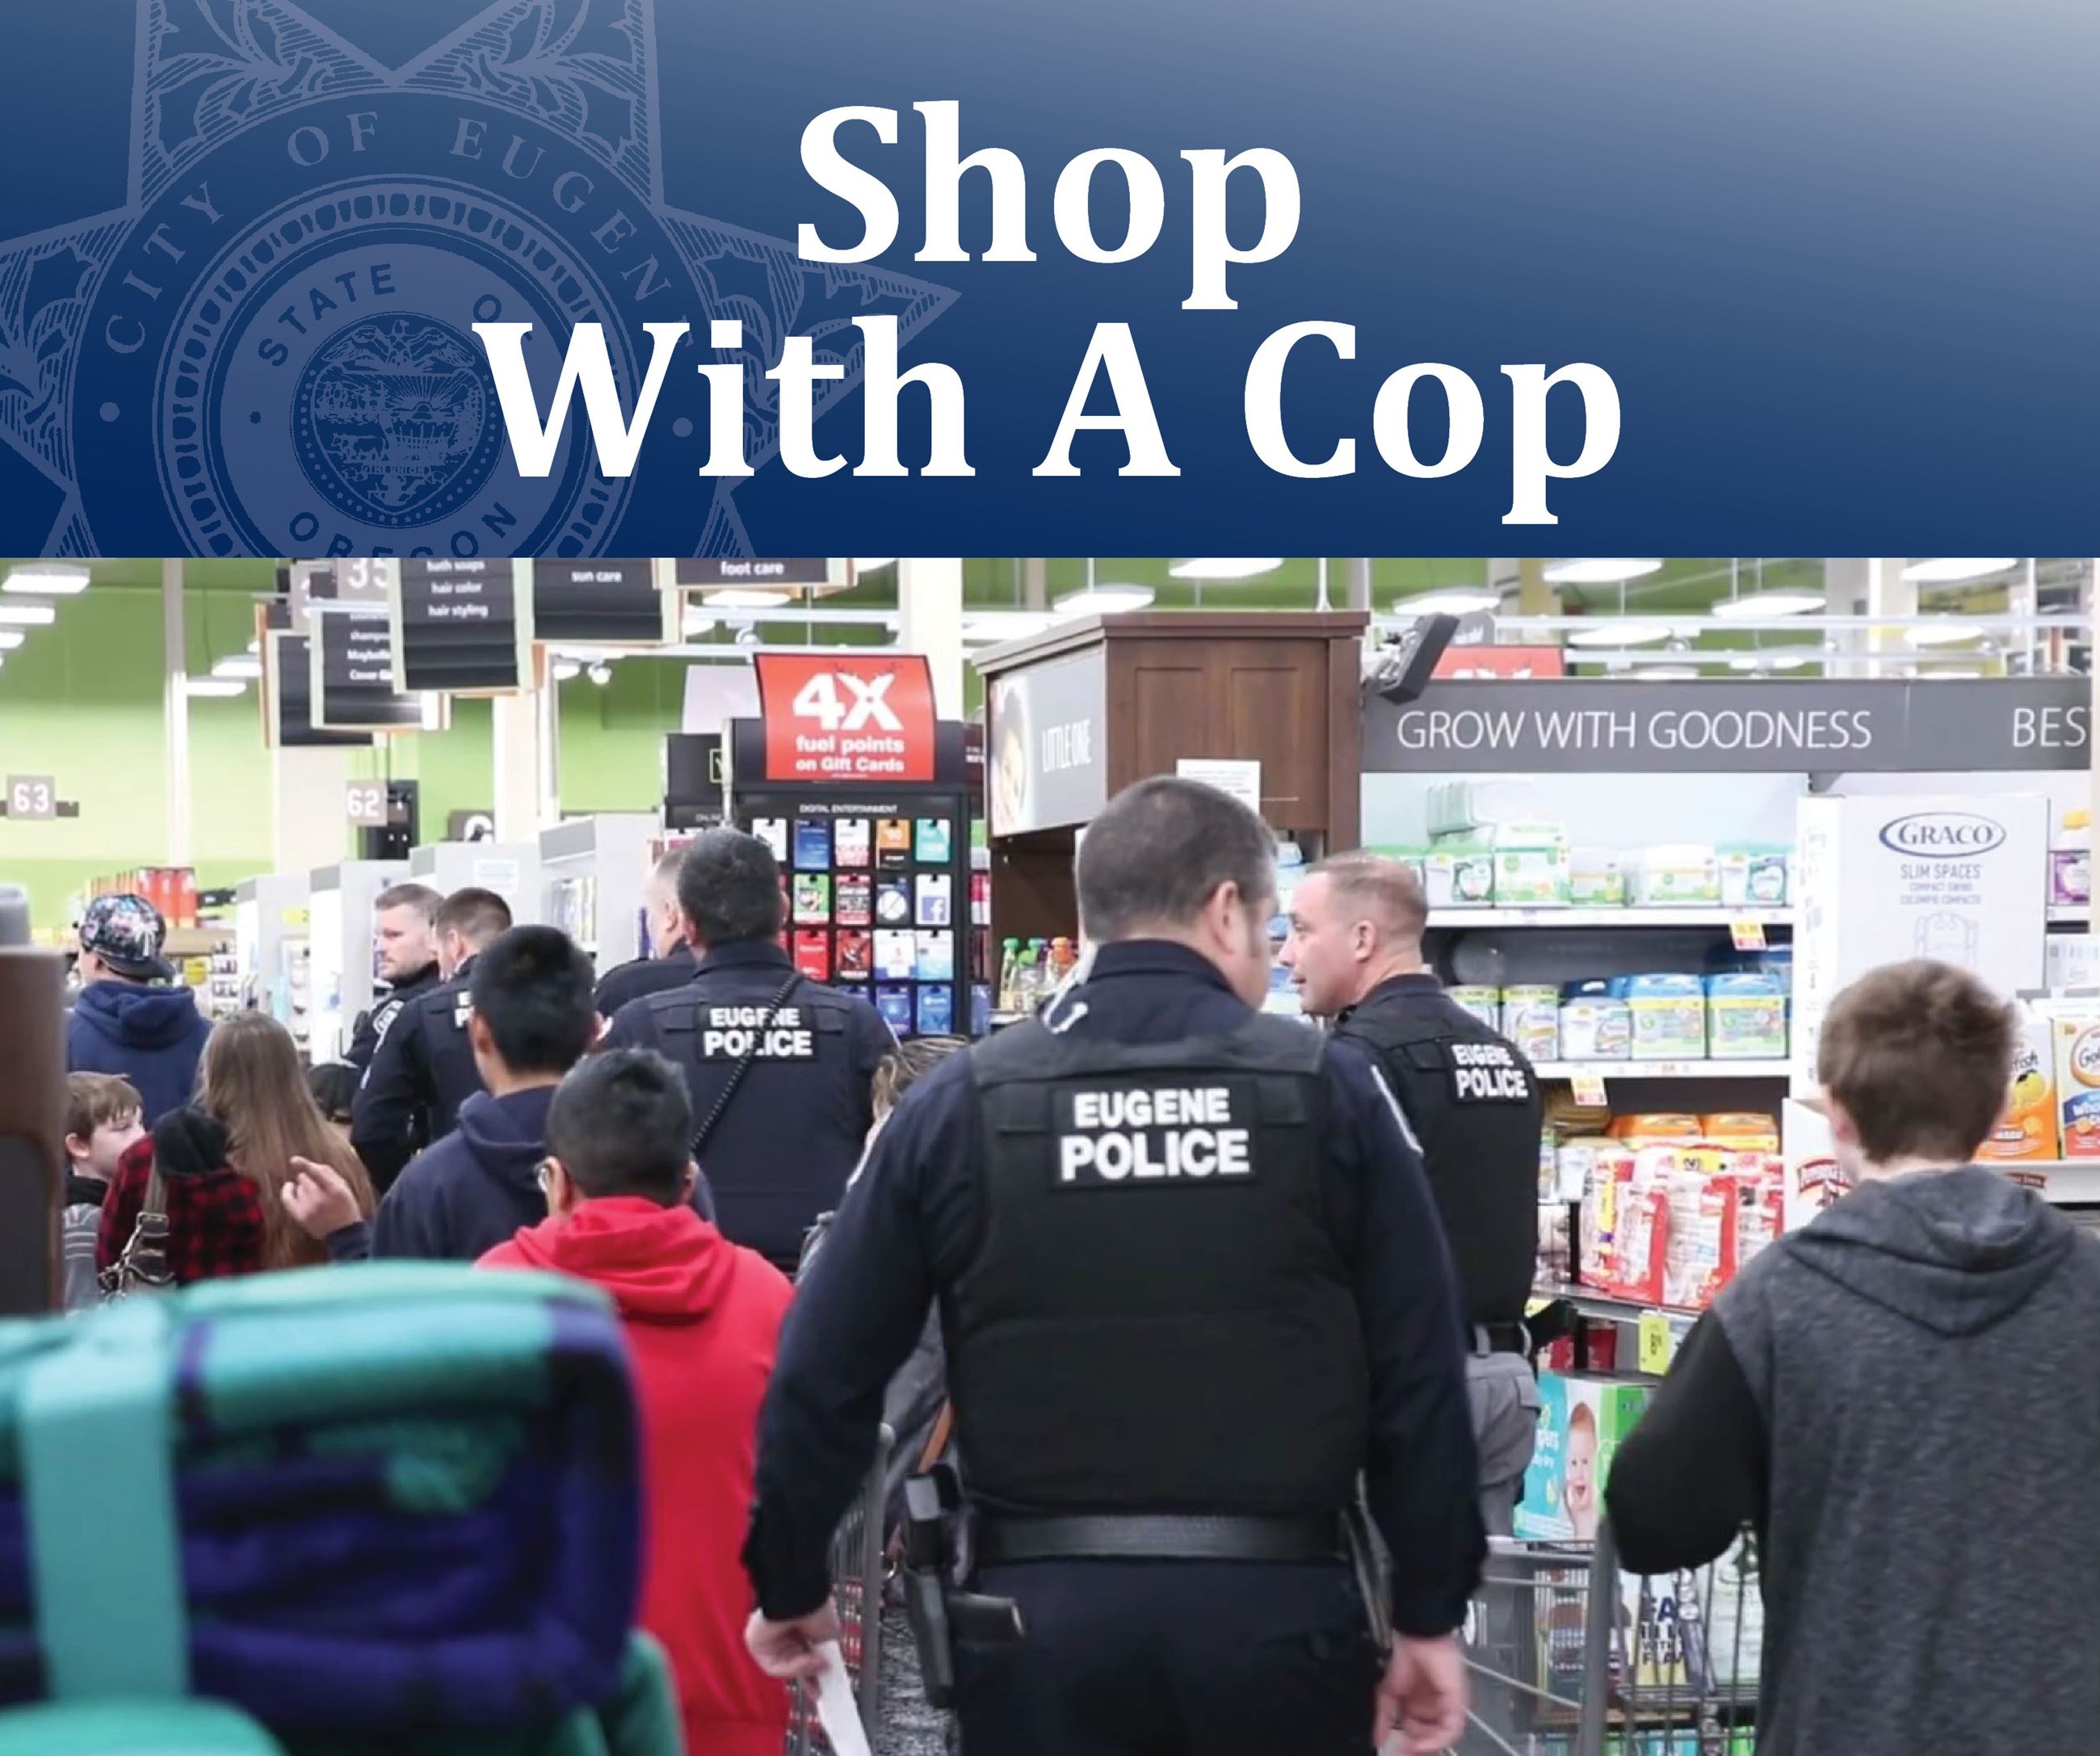 ShopWithACop Opens in new window